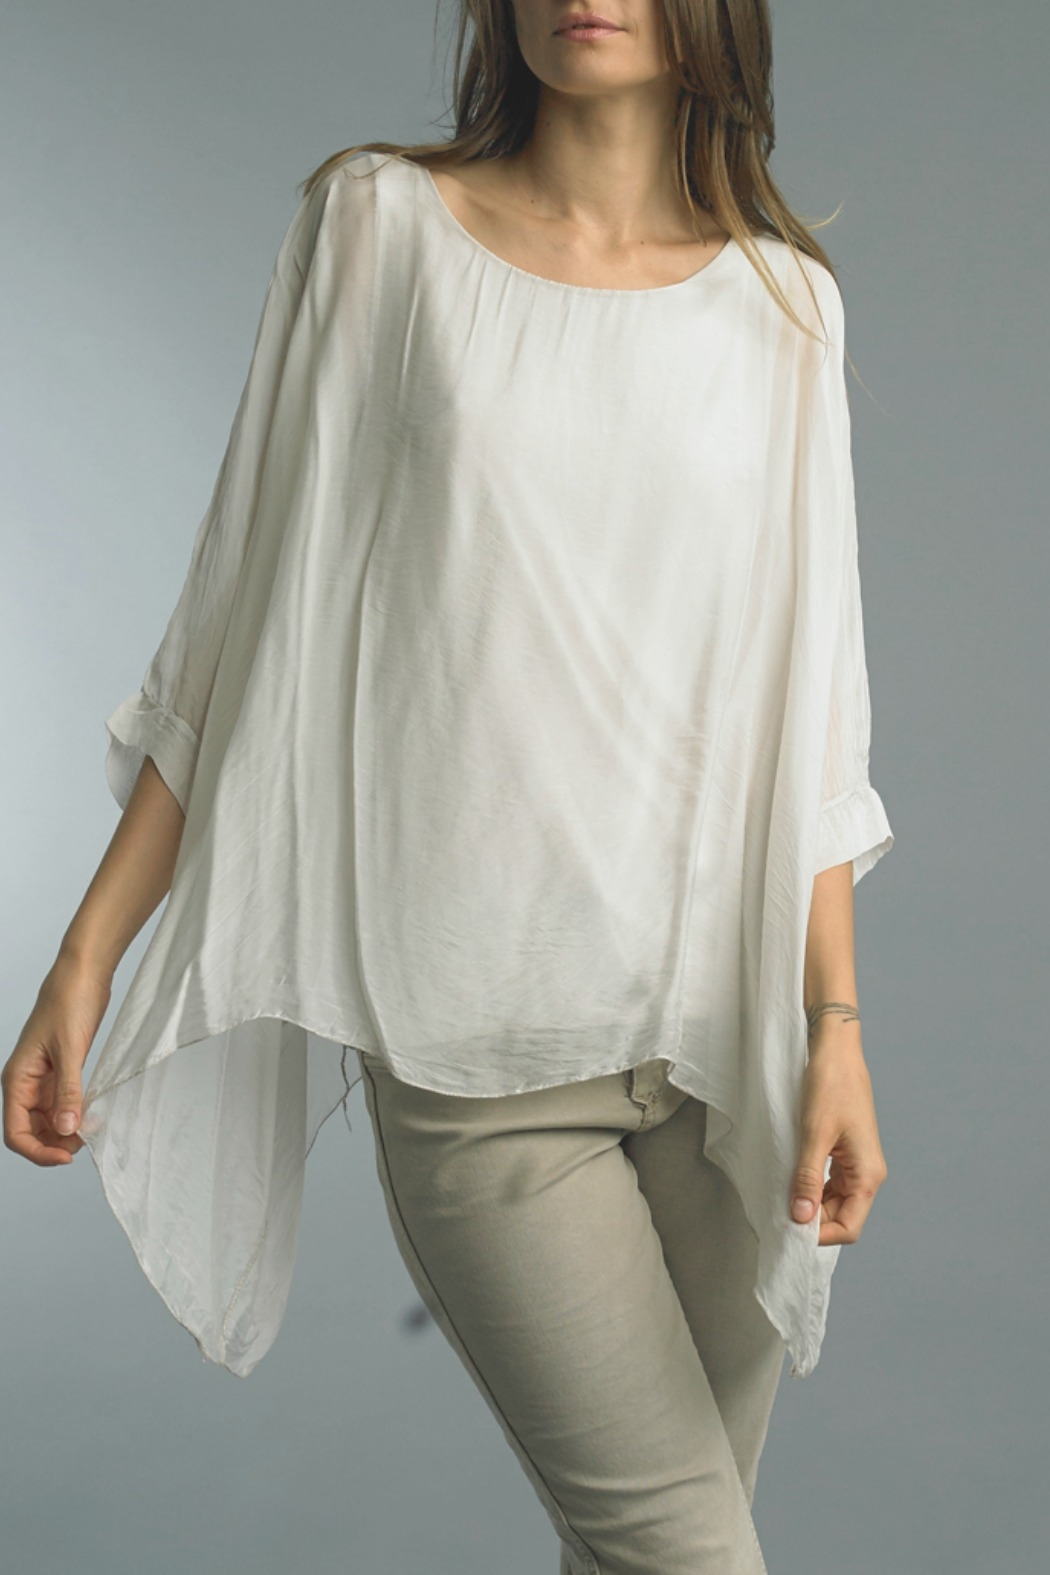 Tempo Paris Silk Flowy Top - Main Image